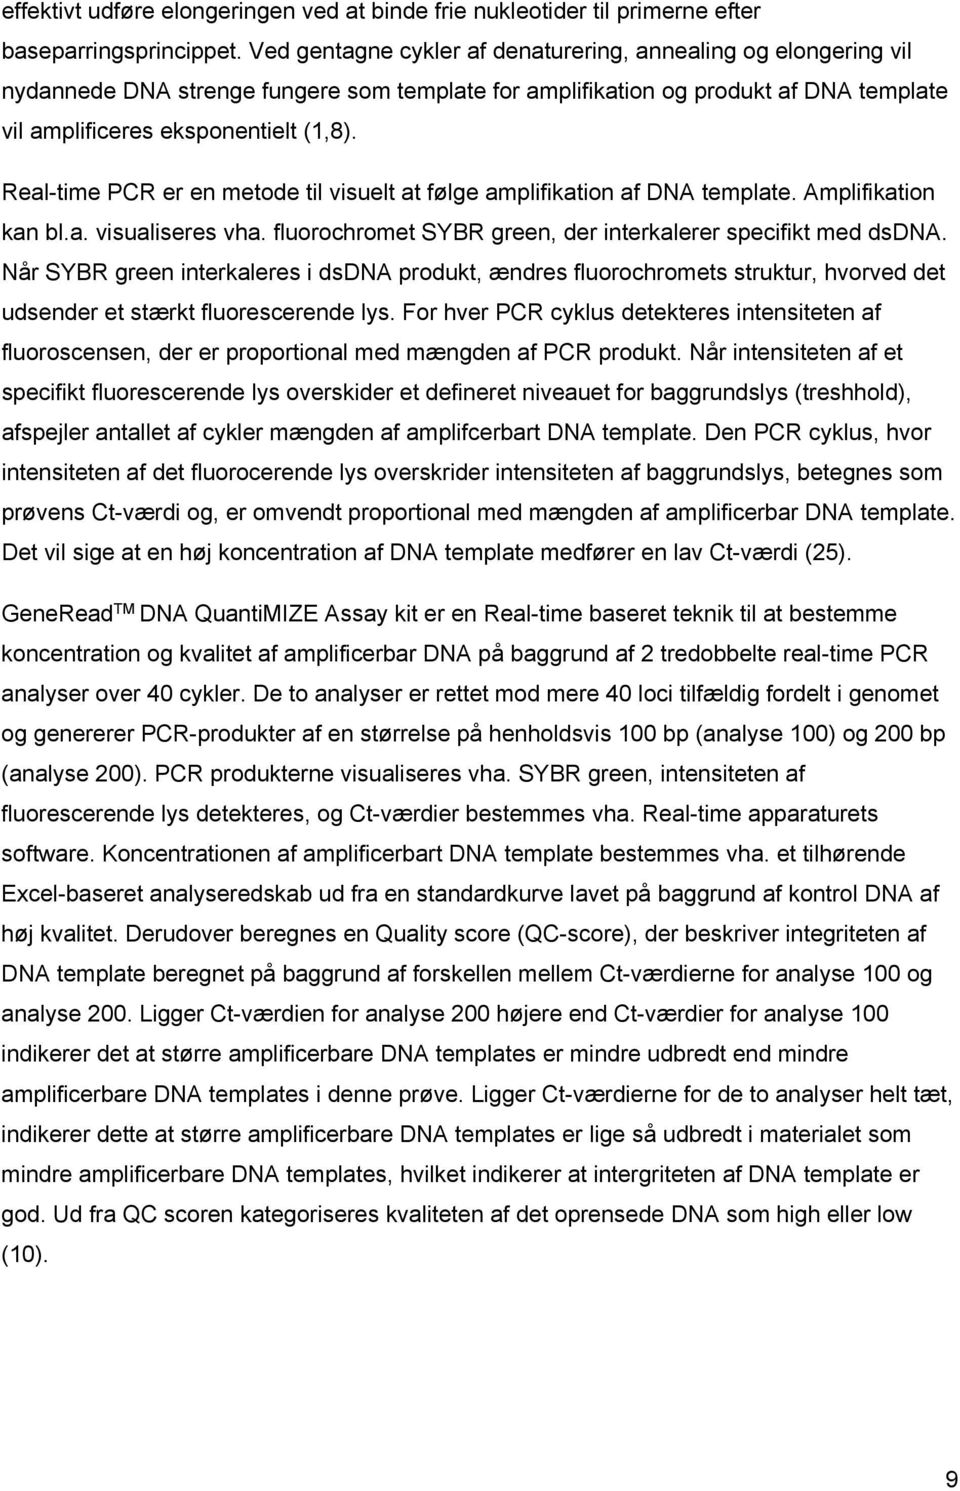 Real-time PCR er en metode til visuelt at følge amplifikation af DNA template. Amplifikation kan bl.a. visualiseres vha. fluorochromet SYBR green, der interkalerer specifikt med dsdna.